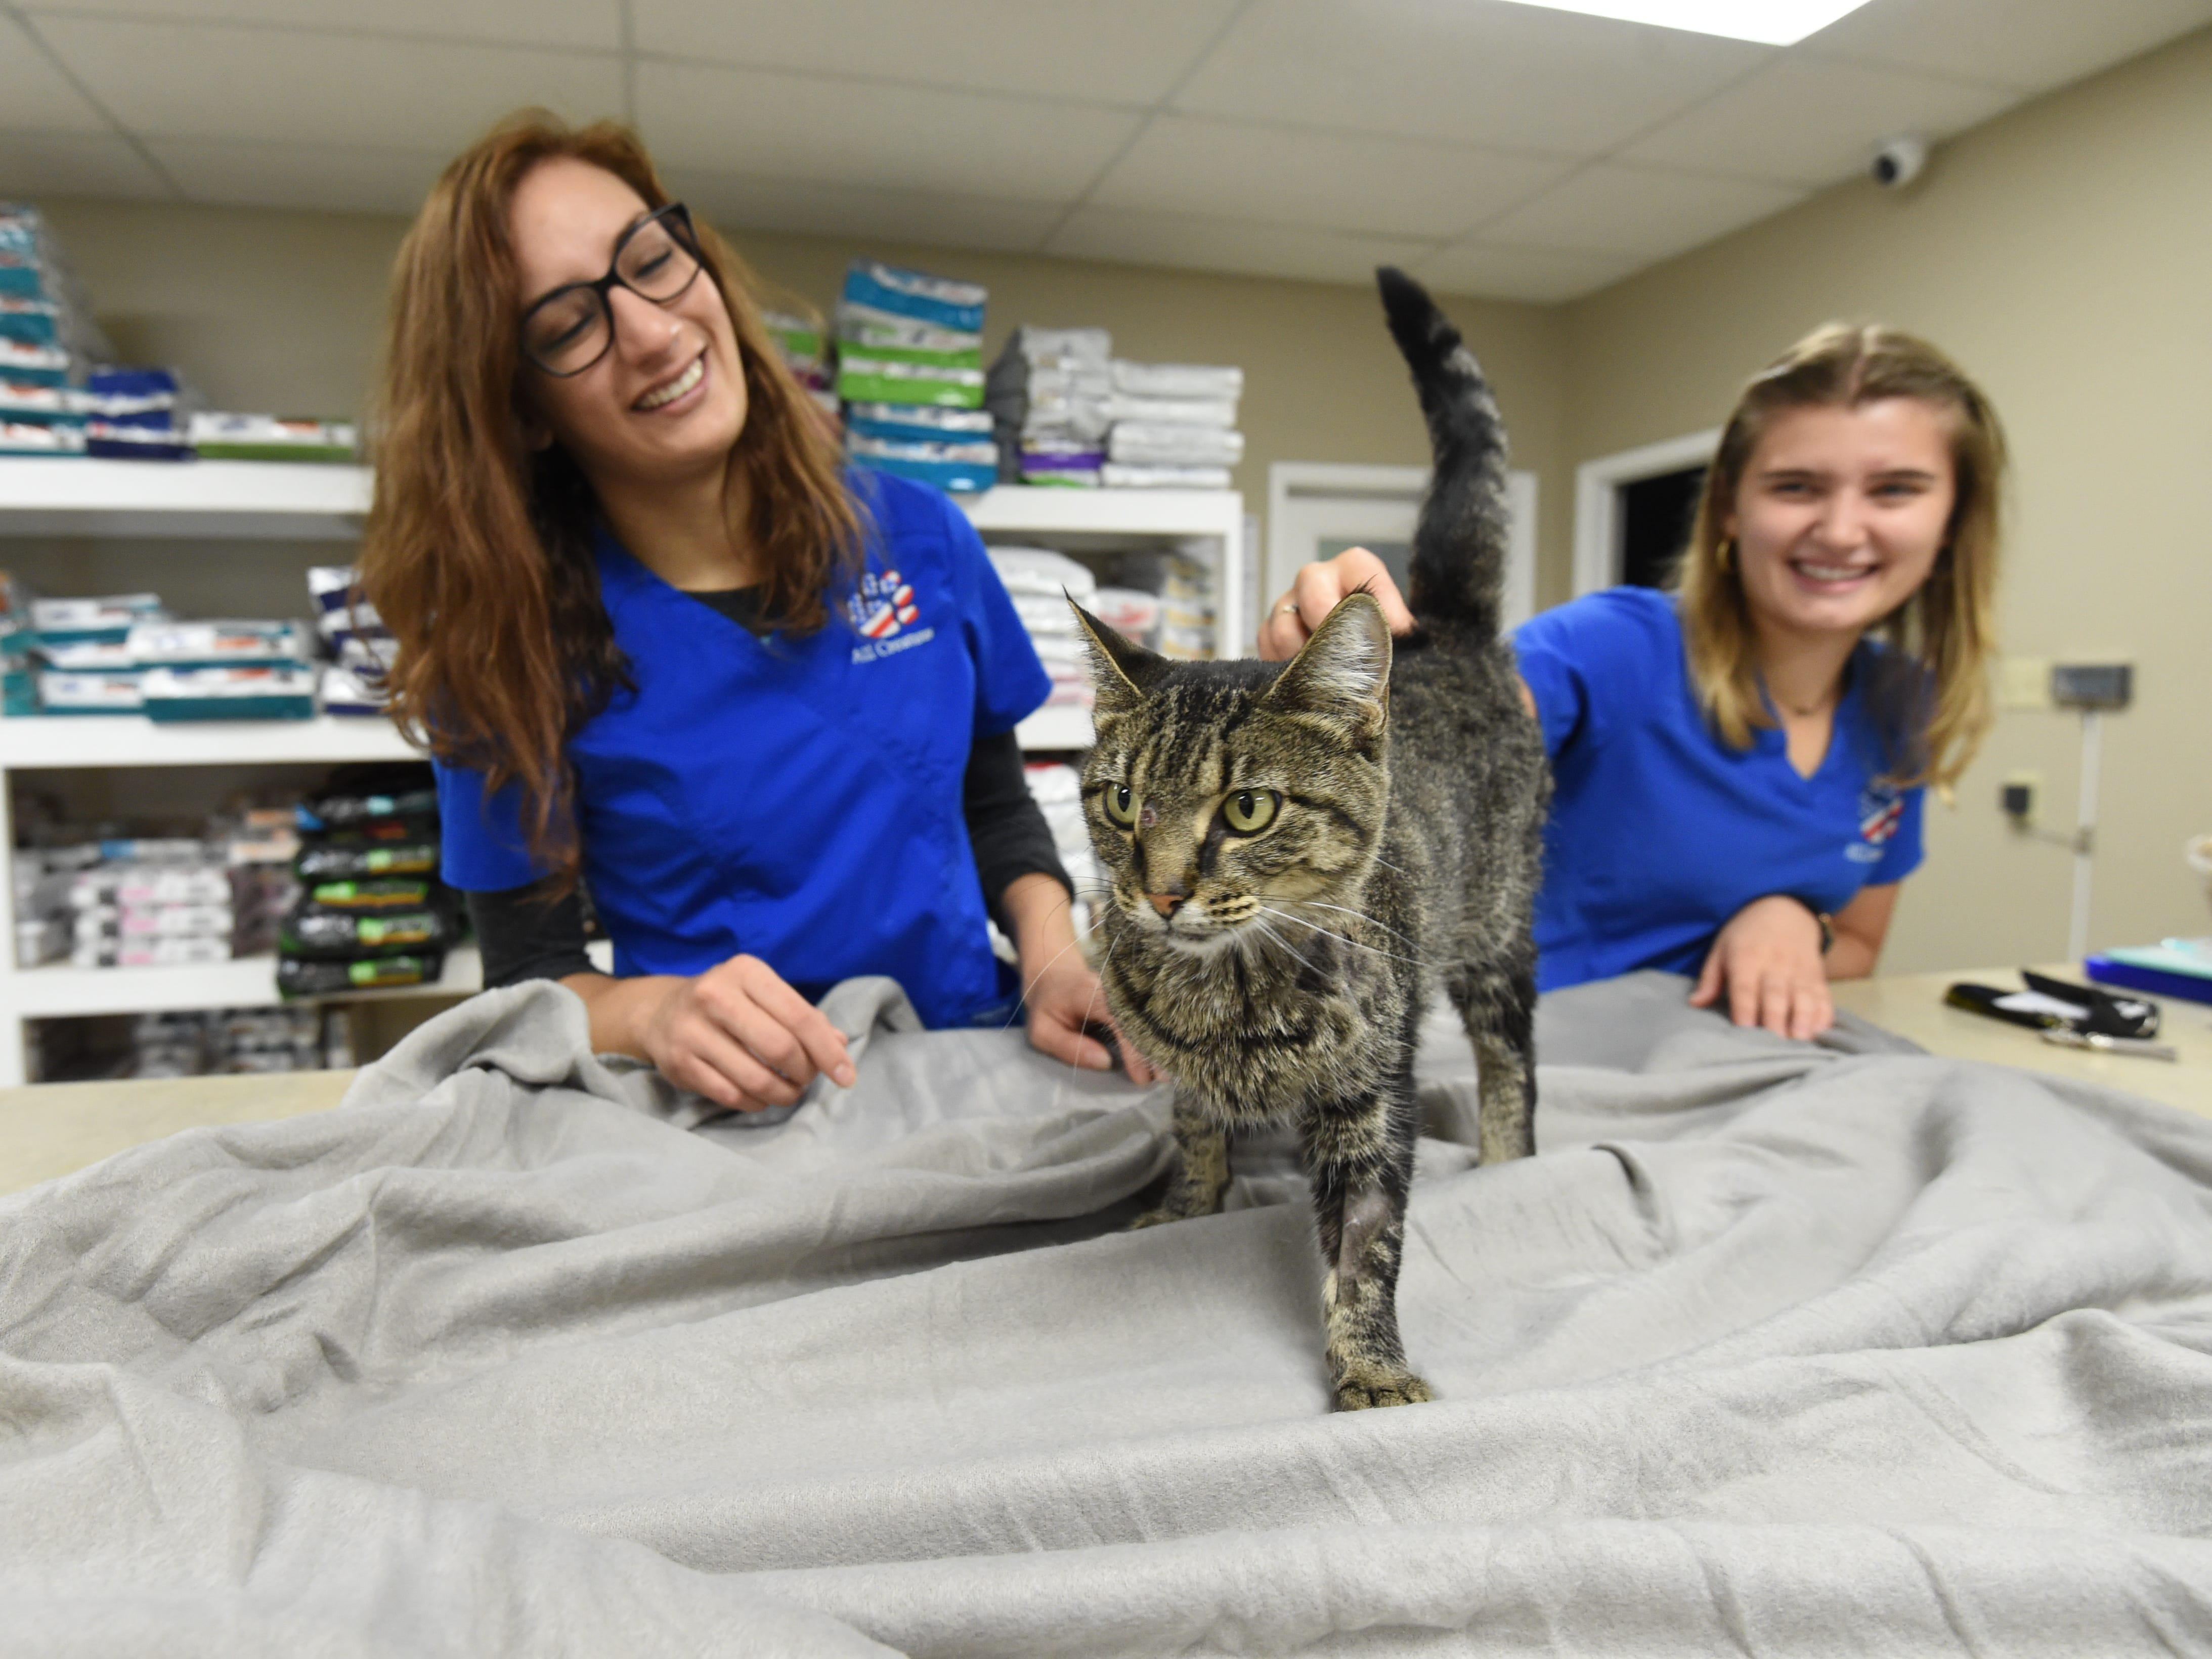 All Creatures Veterinary Hospital  employees Stephanie Saunders, left, and Andrea Diedrichs check out Katniss, the cat who survived being shot in the head with an arrow.